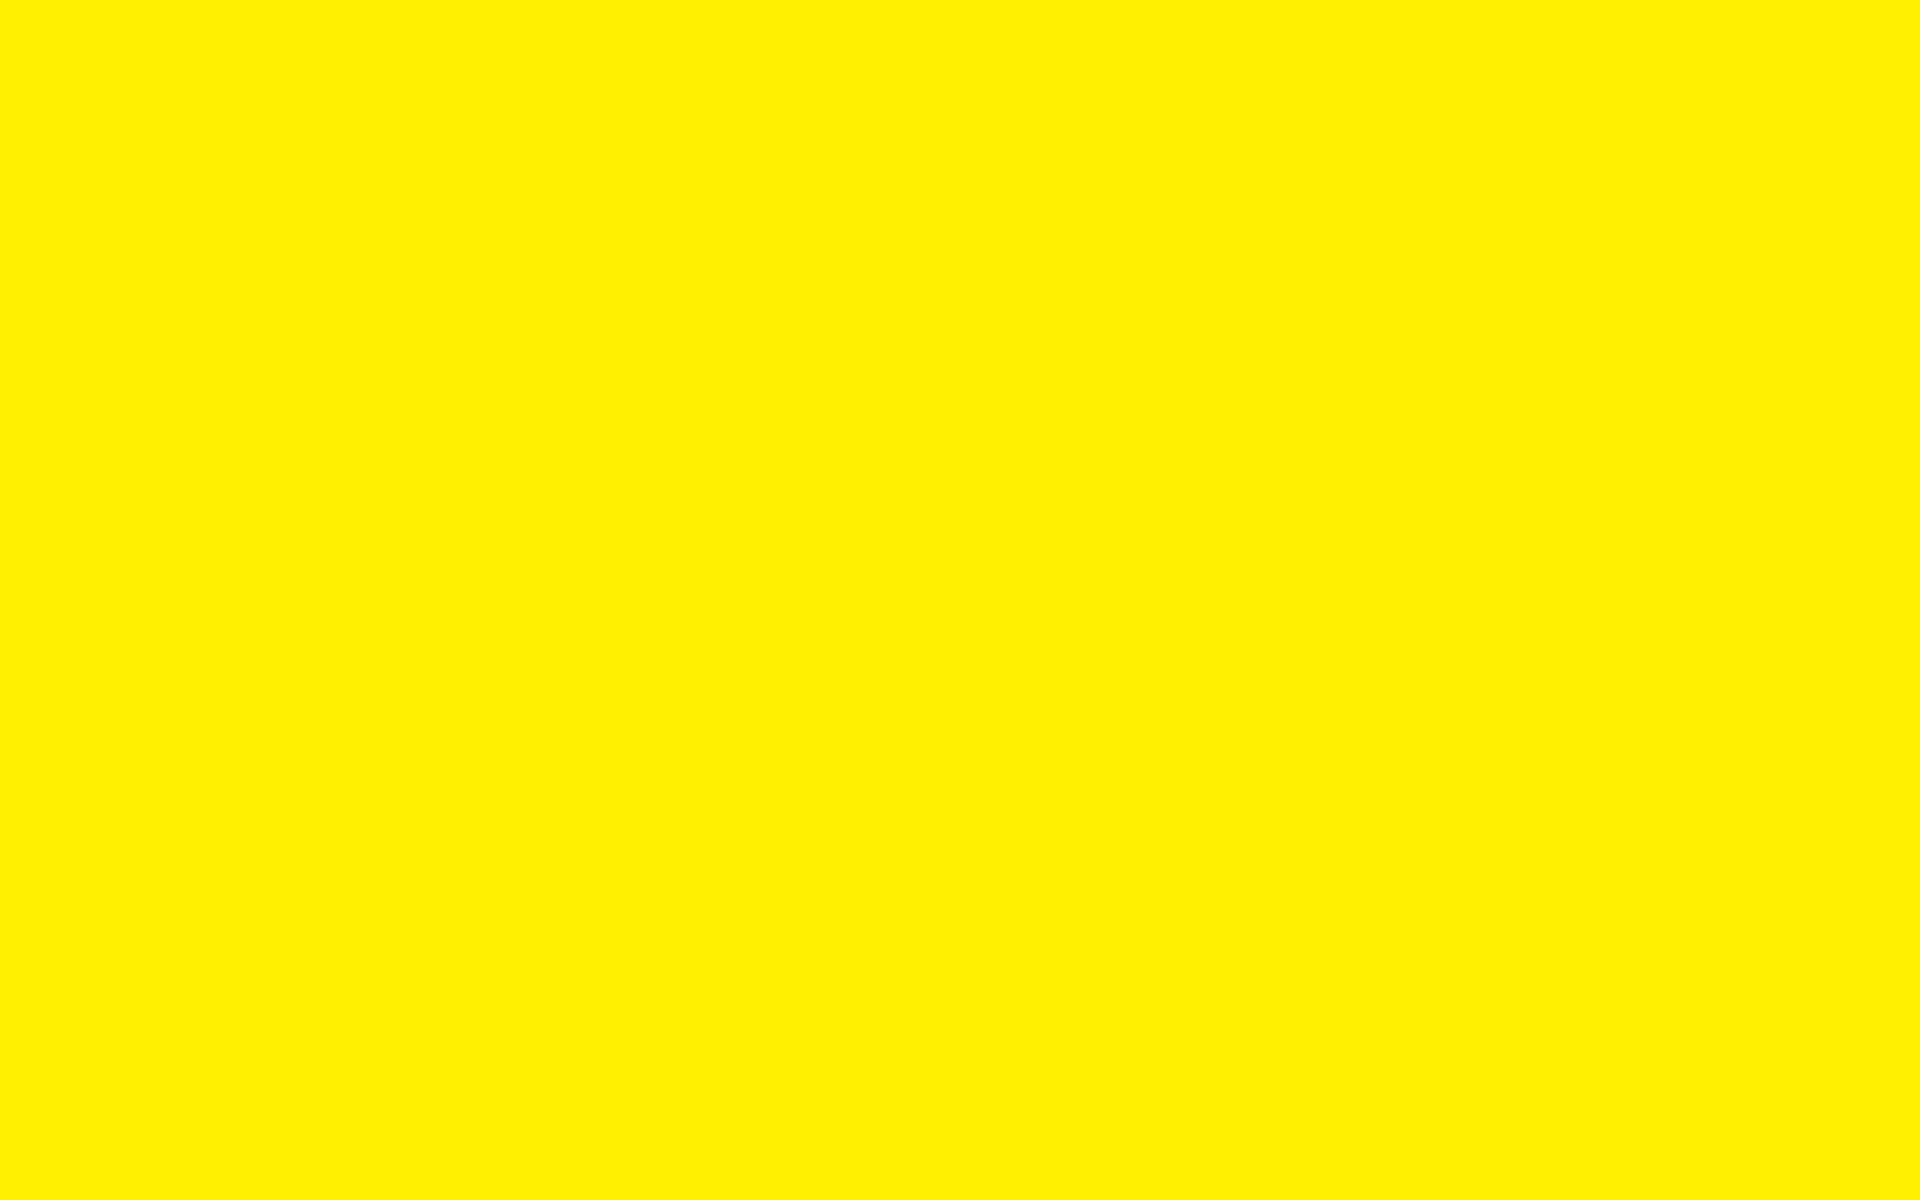 1920x1200 Canary Yellow Solid Color Background